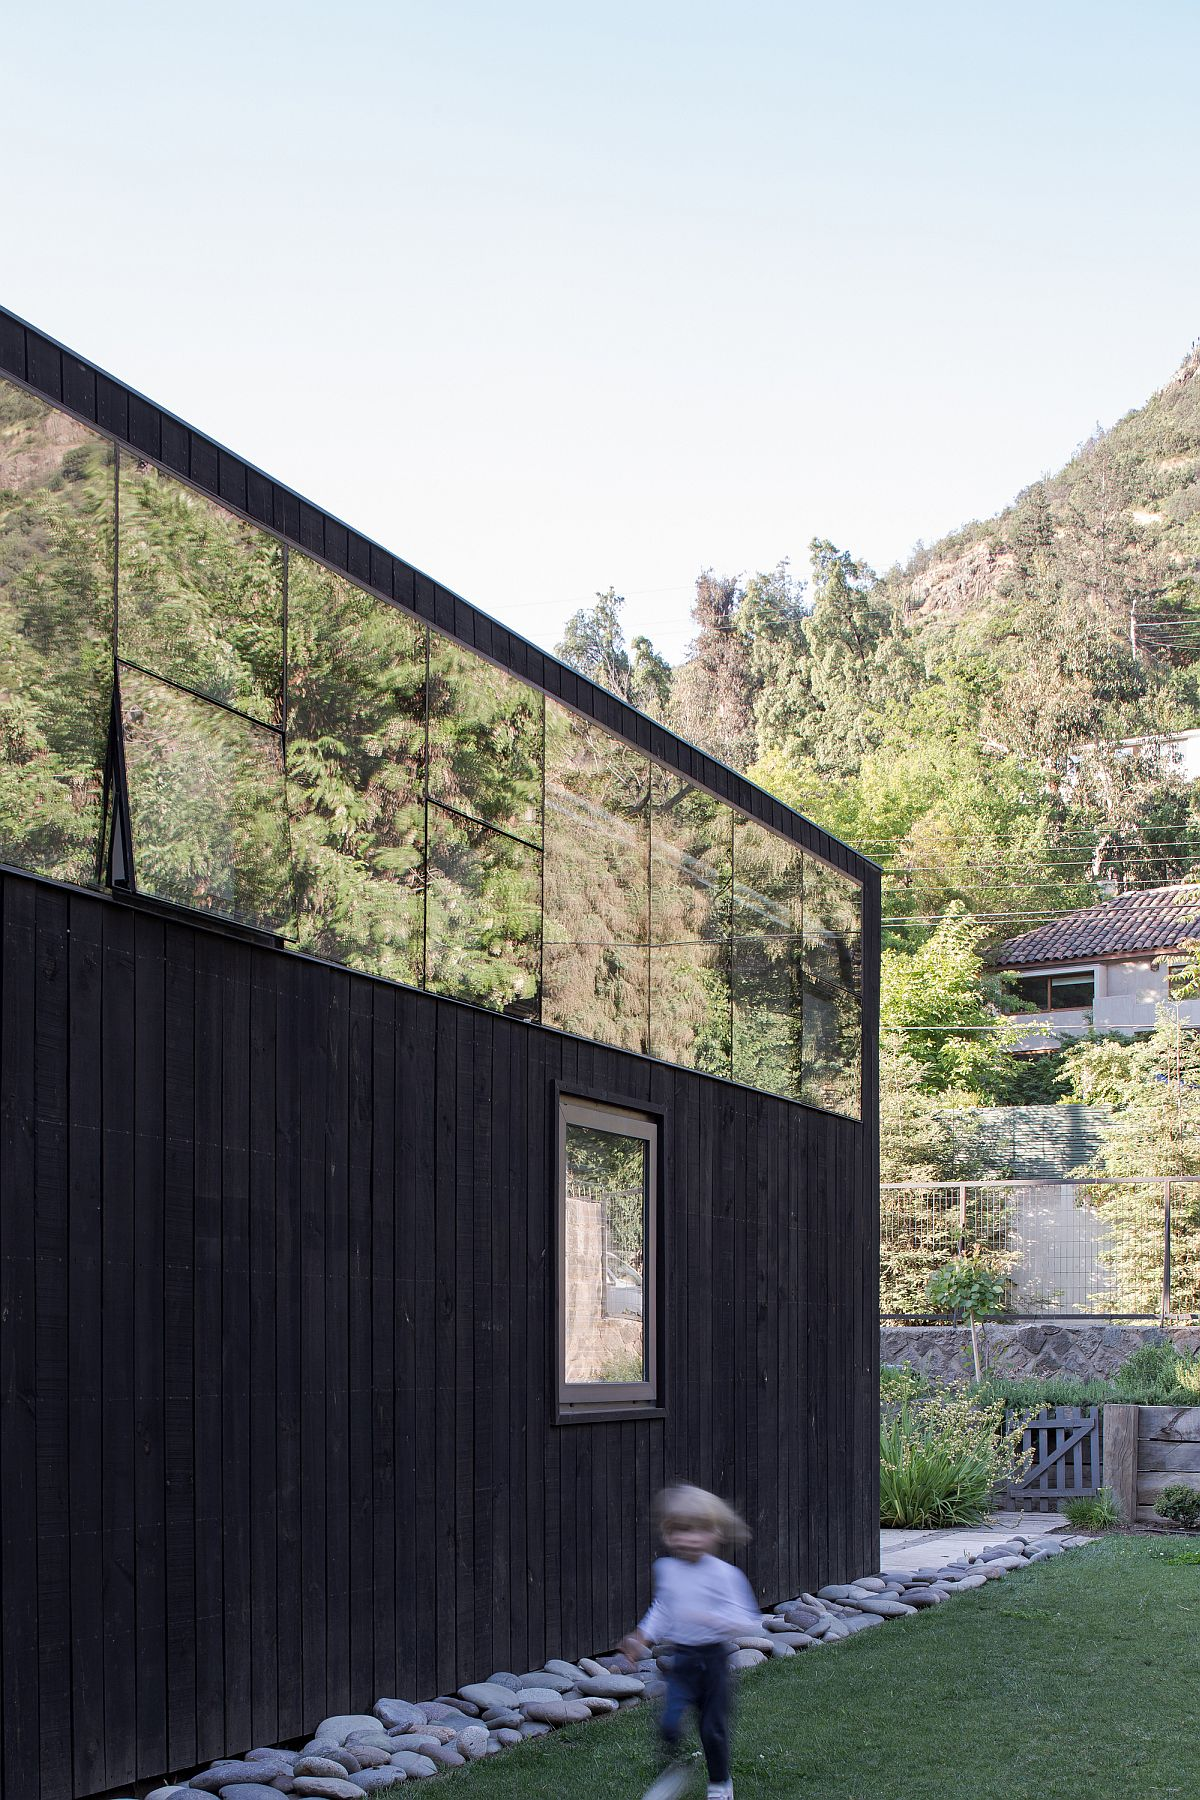 Glass-and-dark-wood-shape-the-exterior-of-the-El-Arrayan-House-in-Chile-22769